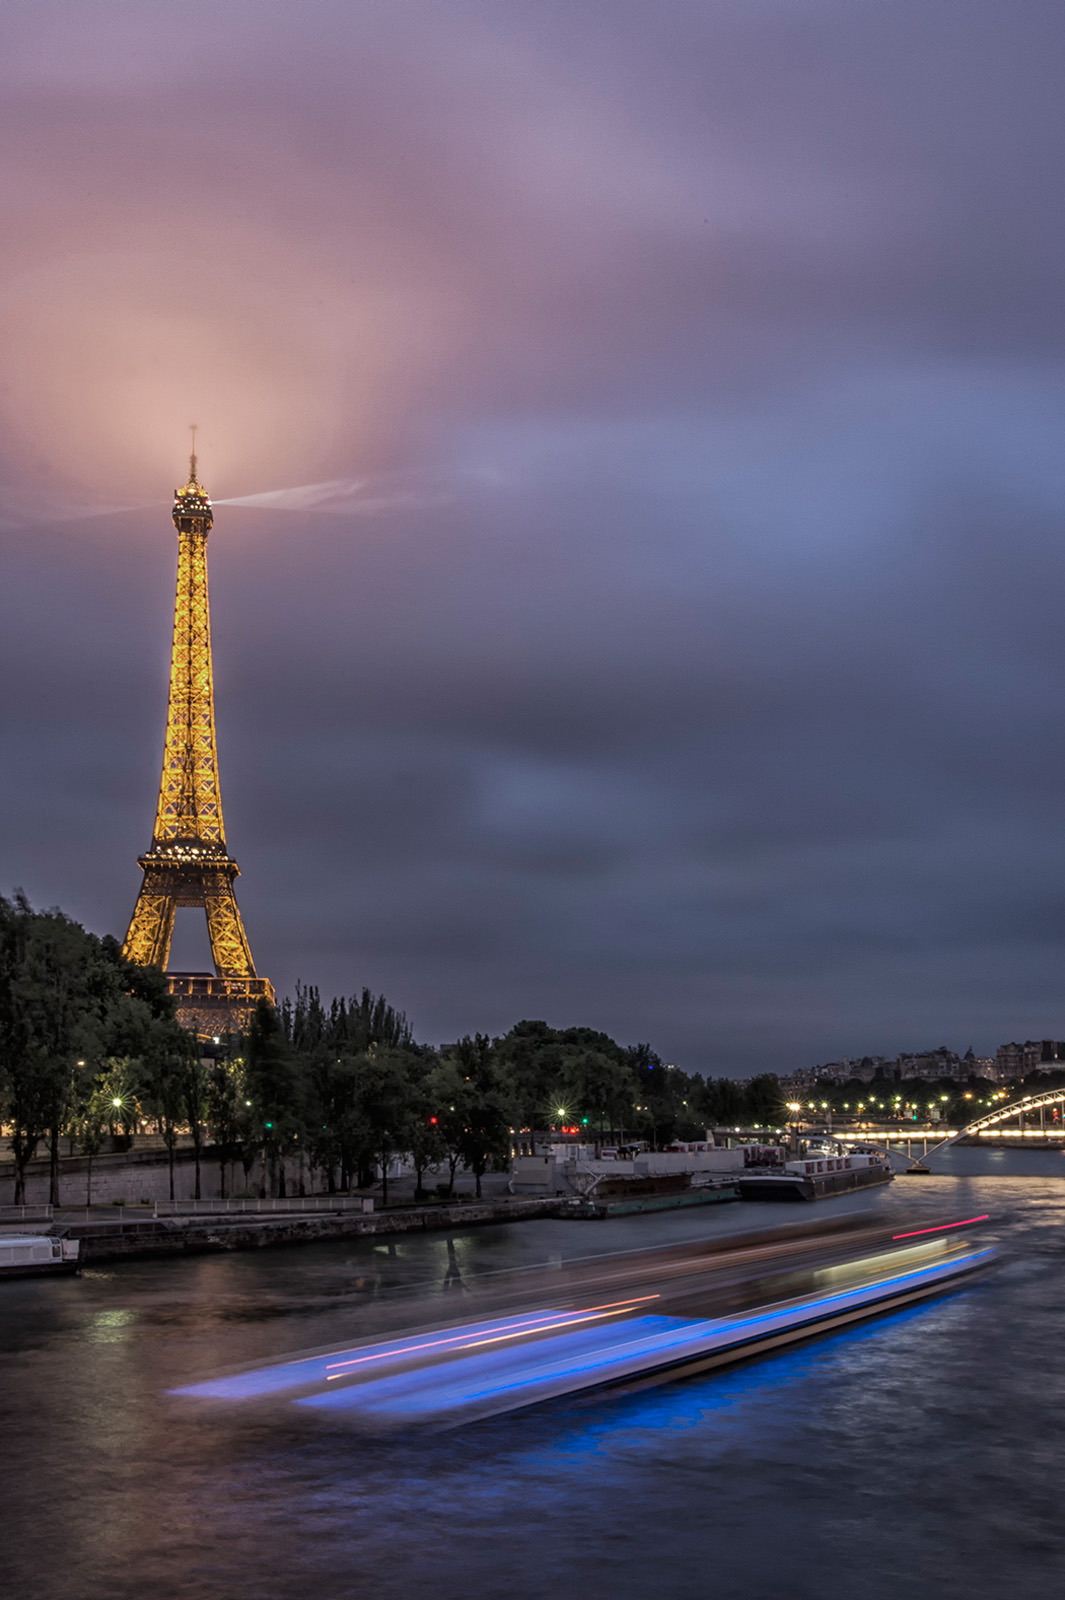 kp-eiffel-tower-and-waterscape-at-night_24-105mm.jpg